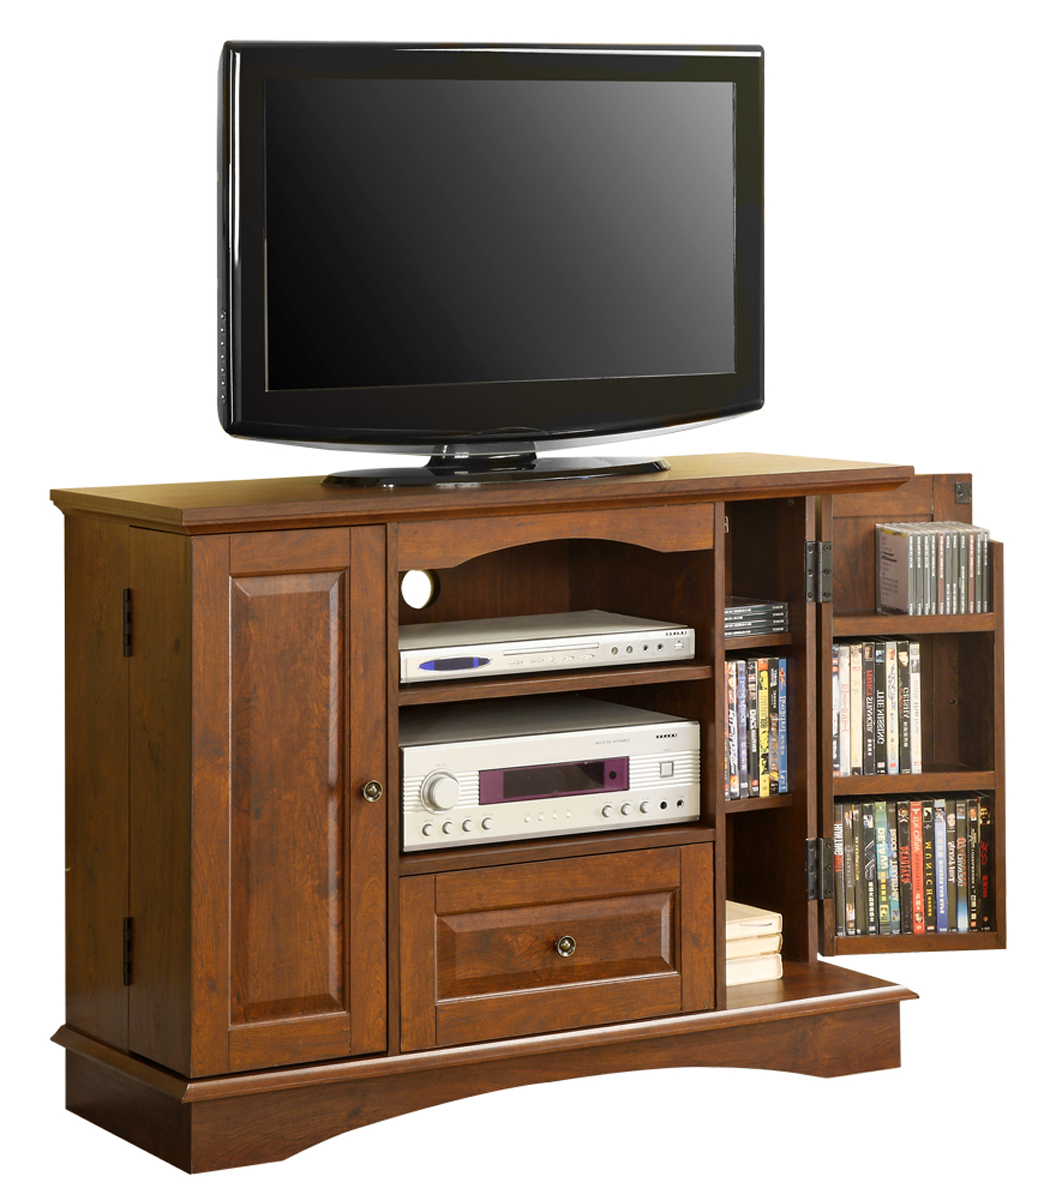 Favorite 42 Inch Wood Tv Stand With Media Storage In Tv Stands Inside Horizontal Or Vertical Storage Shelf Tv Stands (View 6 of 10)